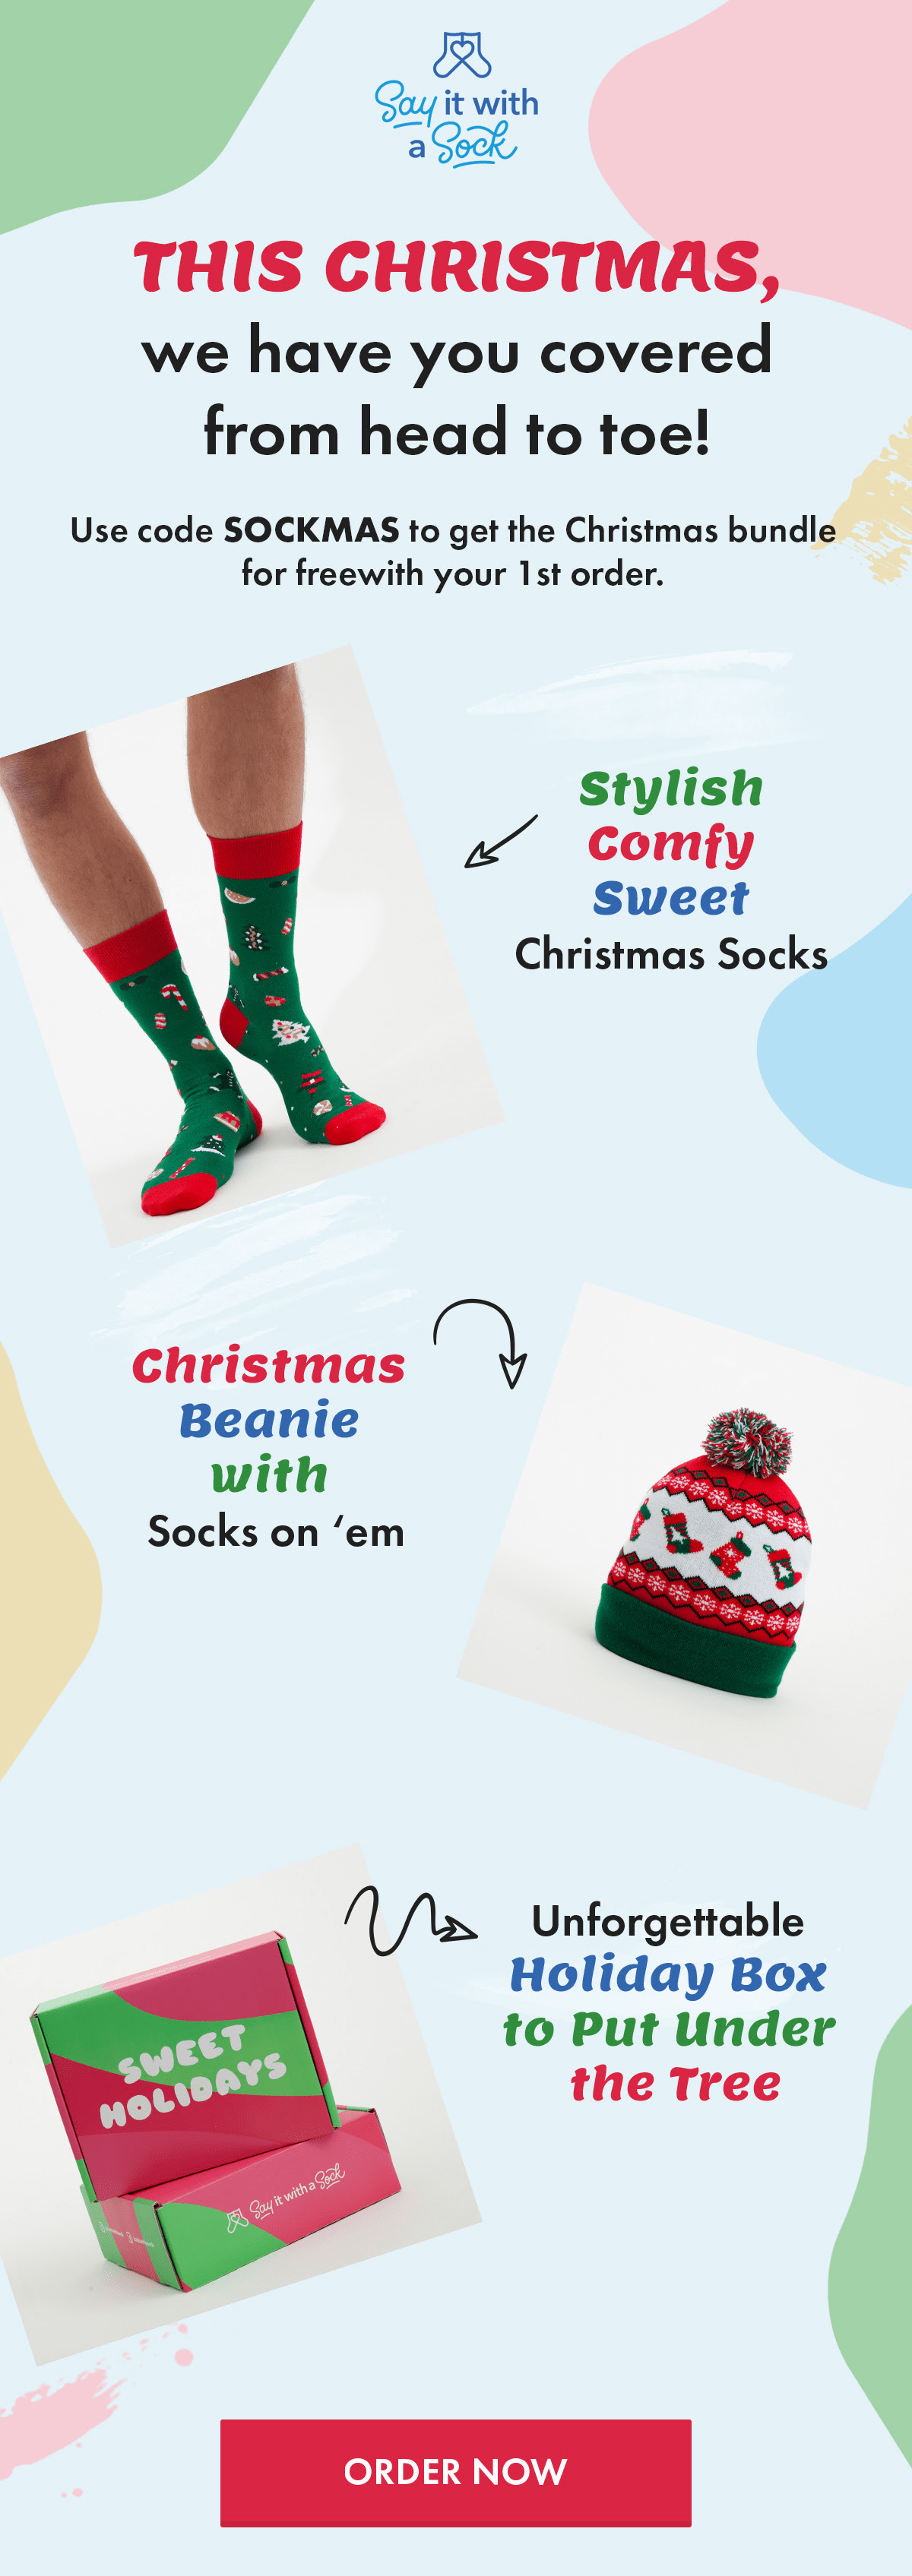 Say It With A Sock Holiday Deal: Get Free Christmas Bundle on your First Box!